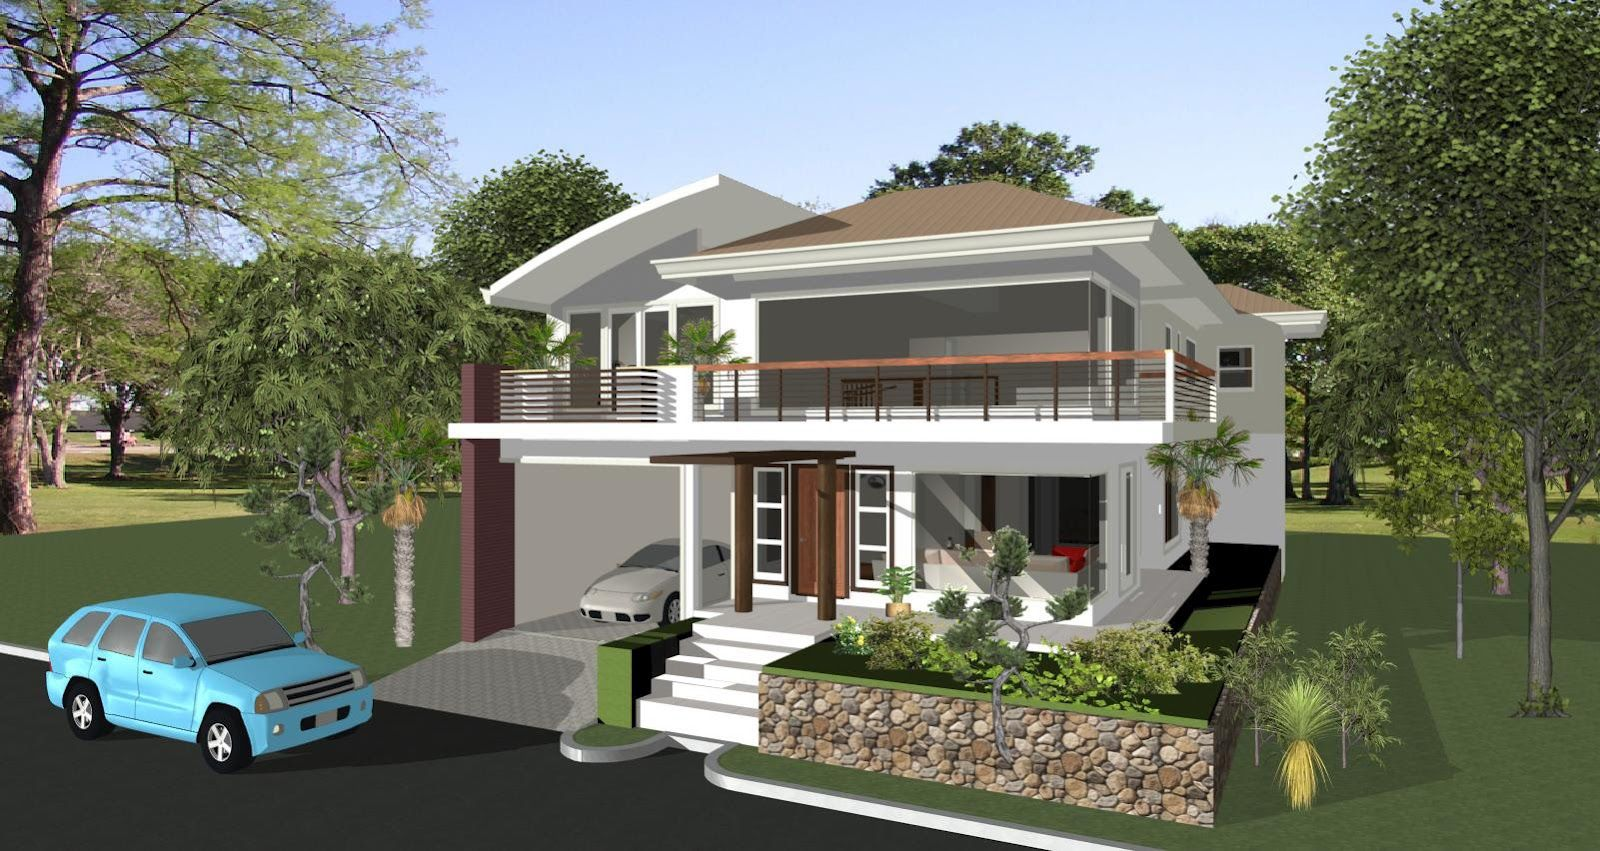 Dream home designs erecre group realty design and Design of modern houses in philippines